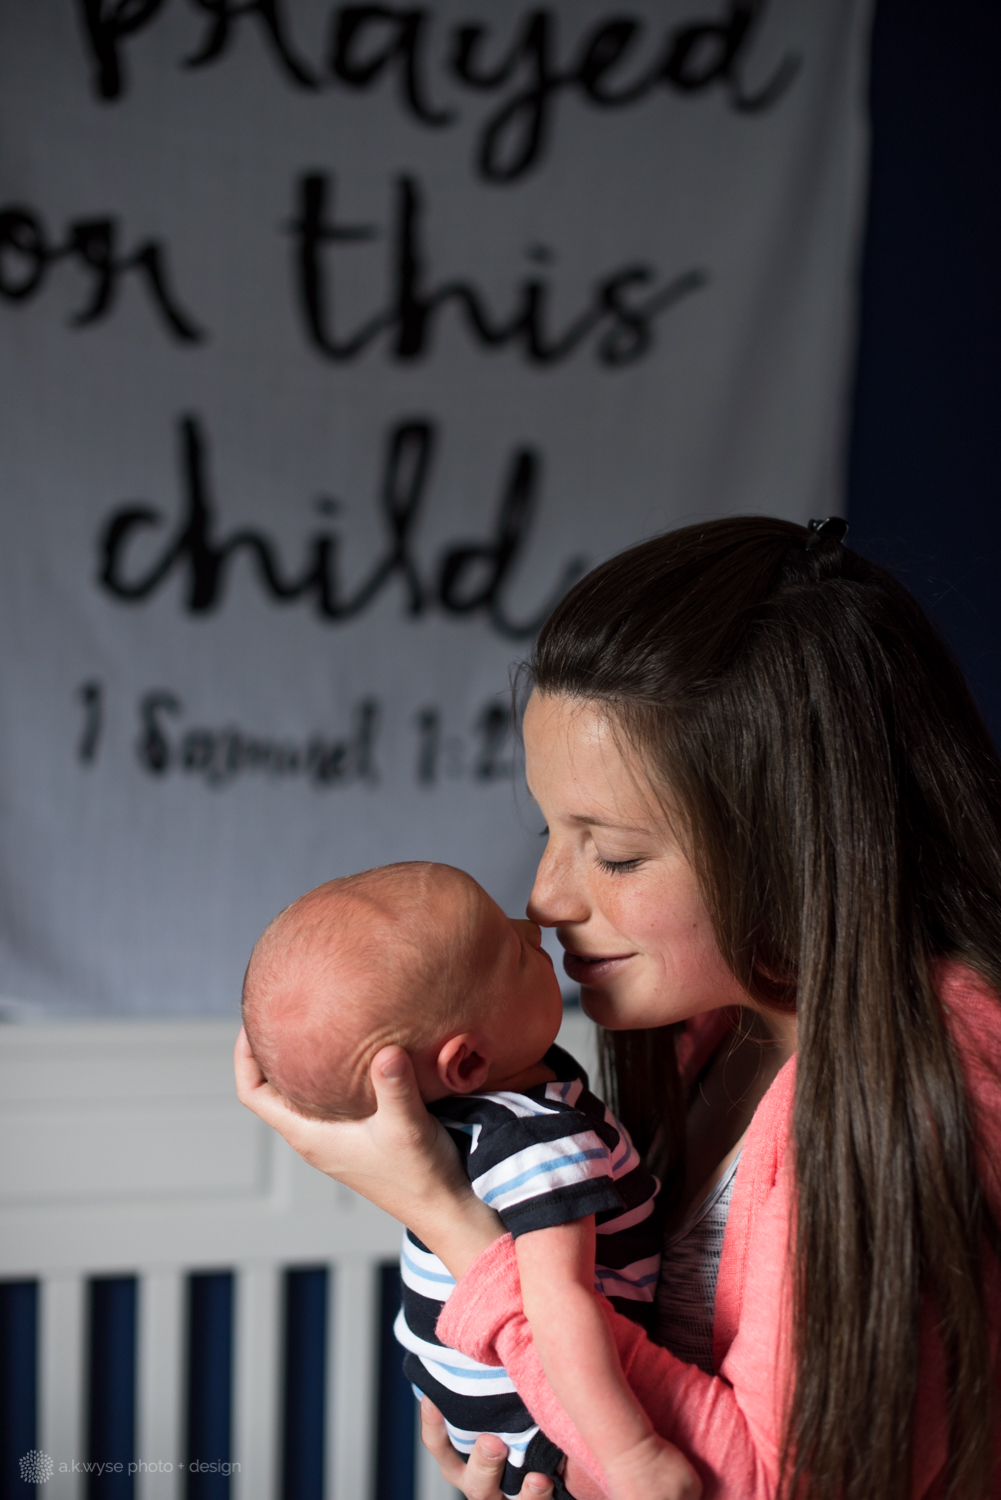 blog-ethan james {newborn 5.17}-8181.jpg